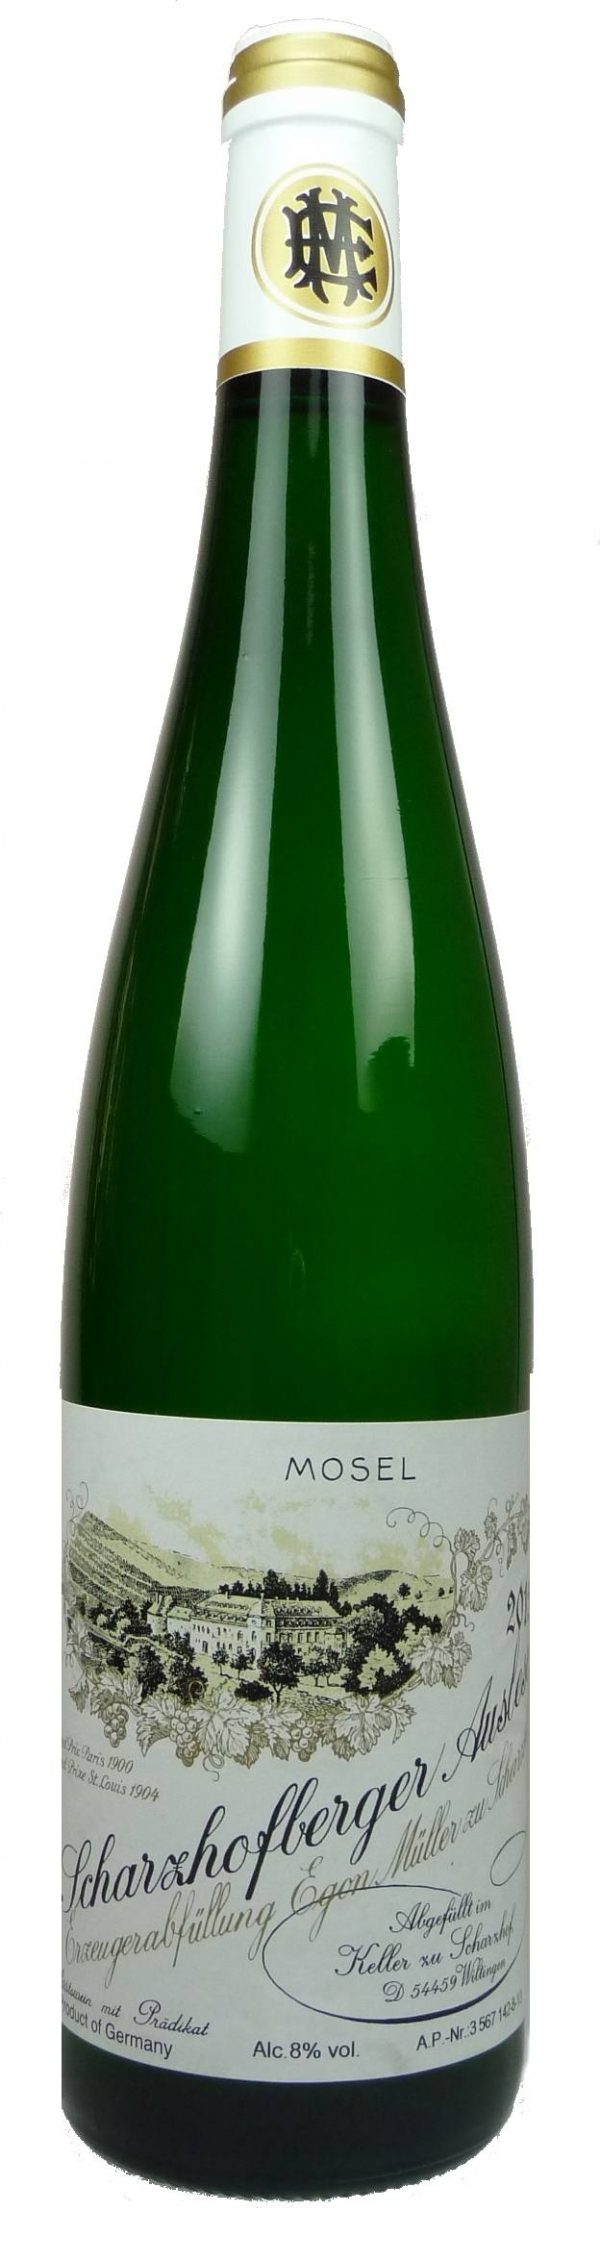 Scharzhofberger Riesling Auslese 2015